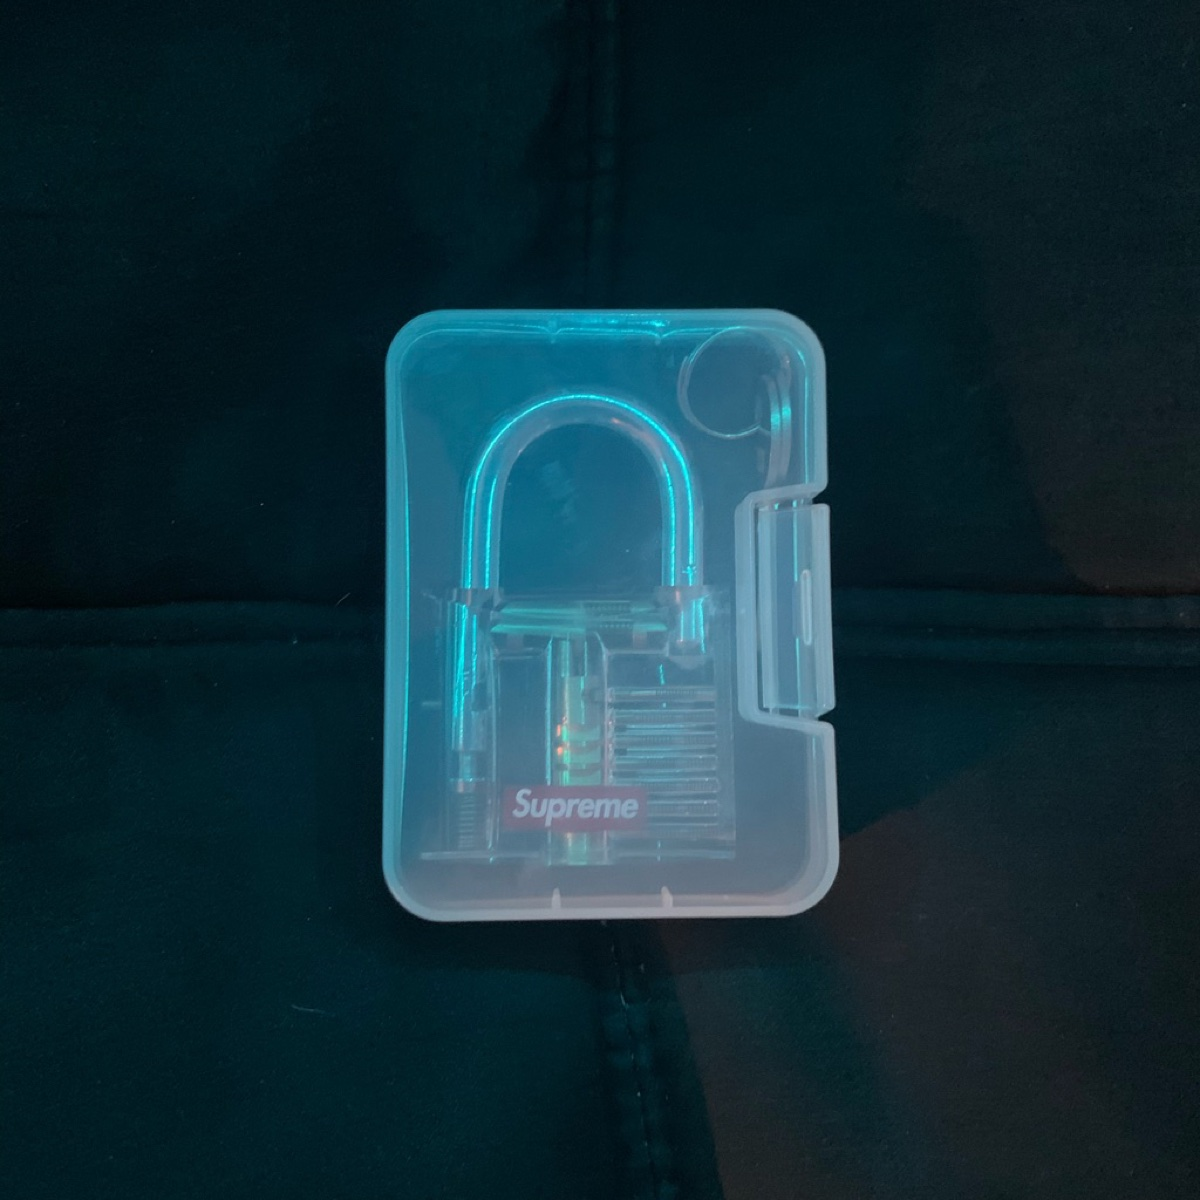 Supreme Transparent Lock